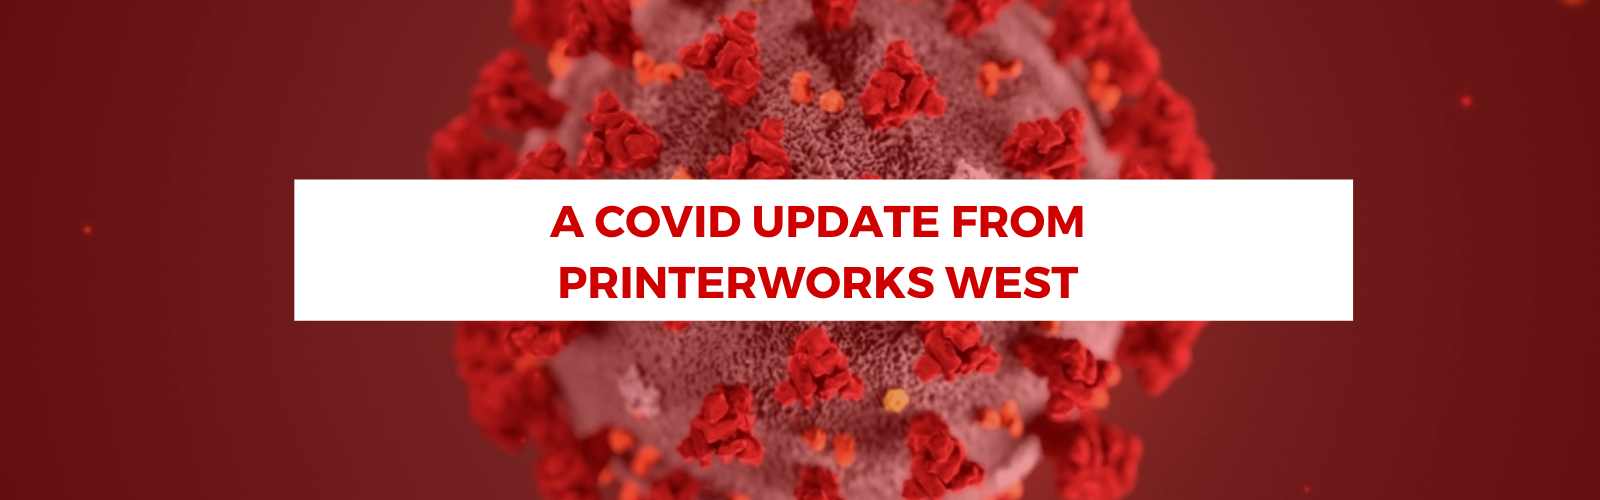 A COVID-19 UPDATE FROM PRINTERWORKS WEST